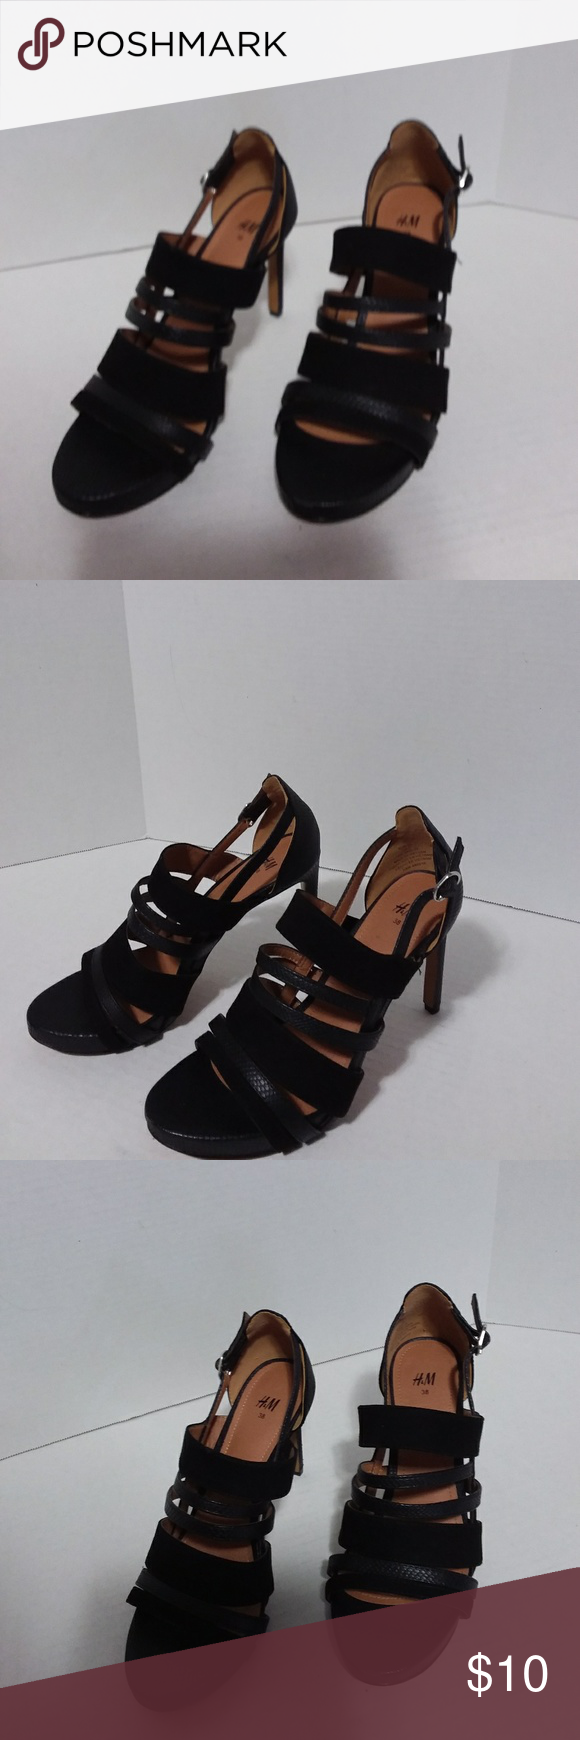 H and M black heels SZ 38(8) These are